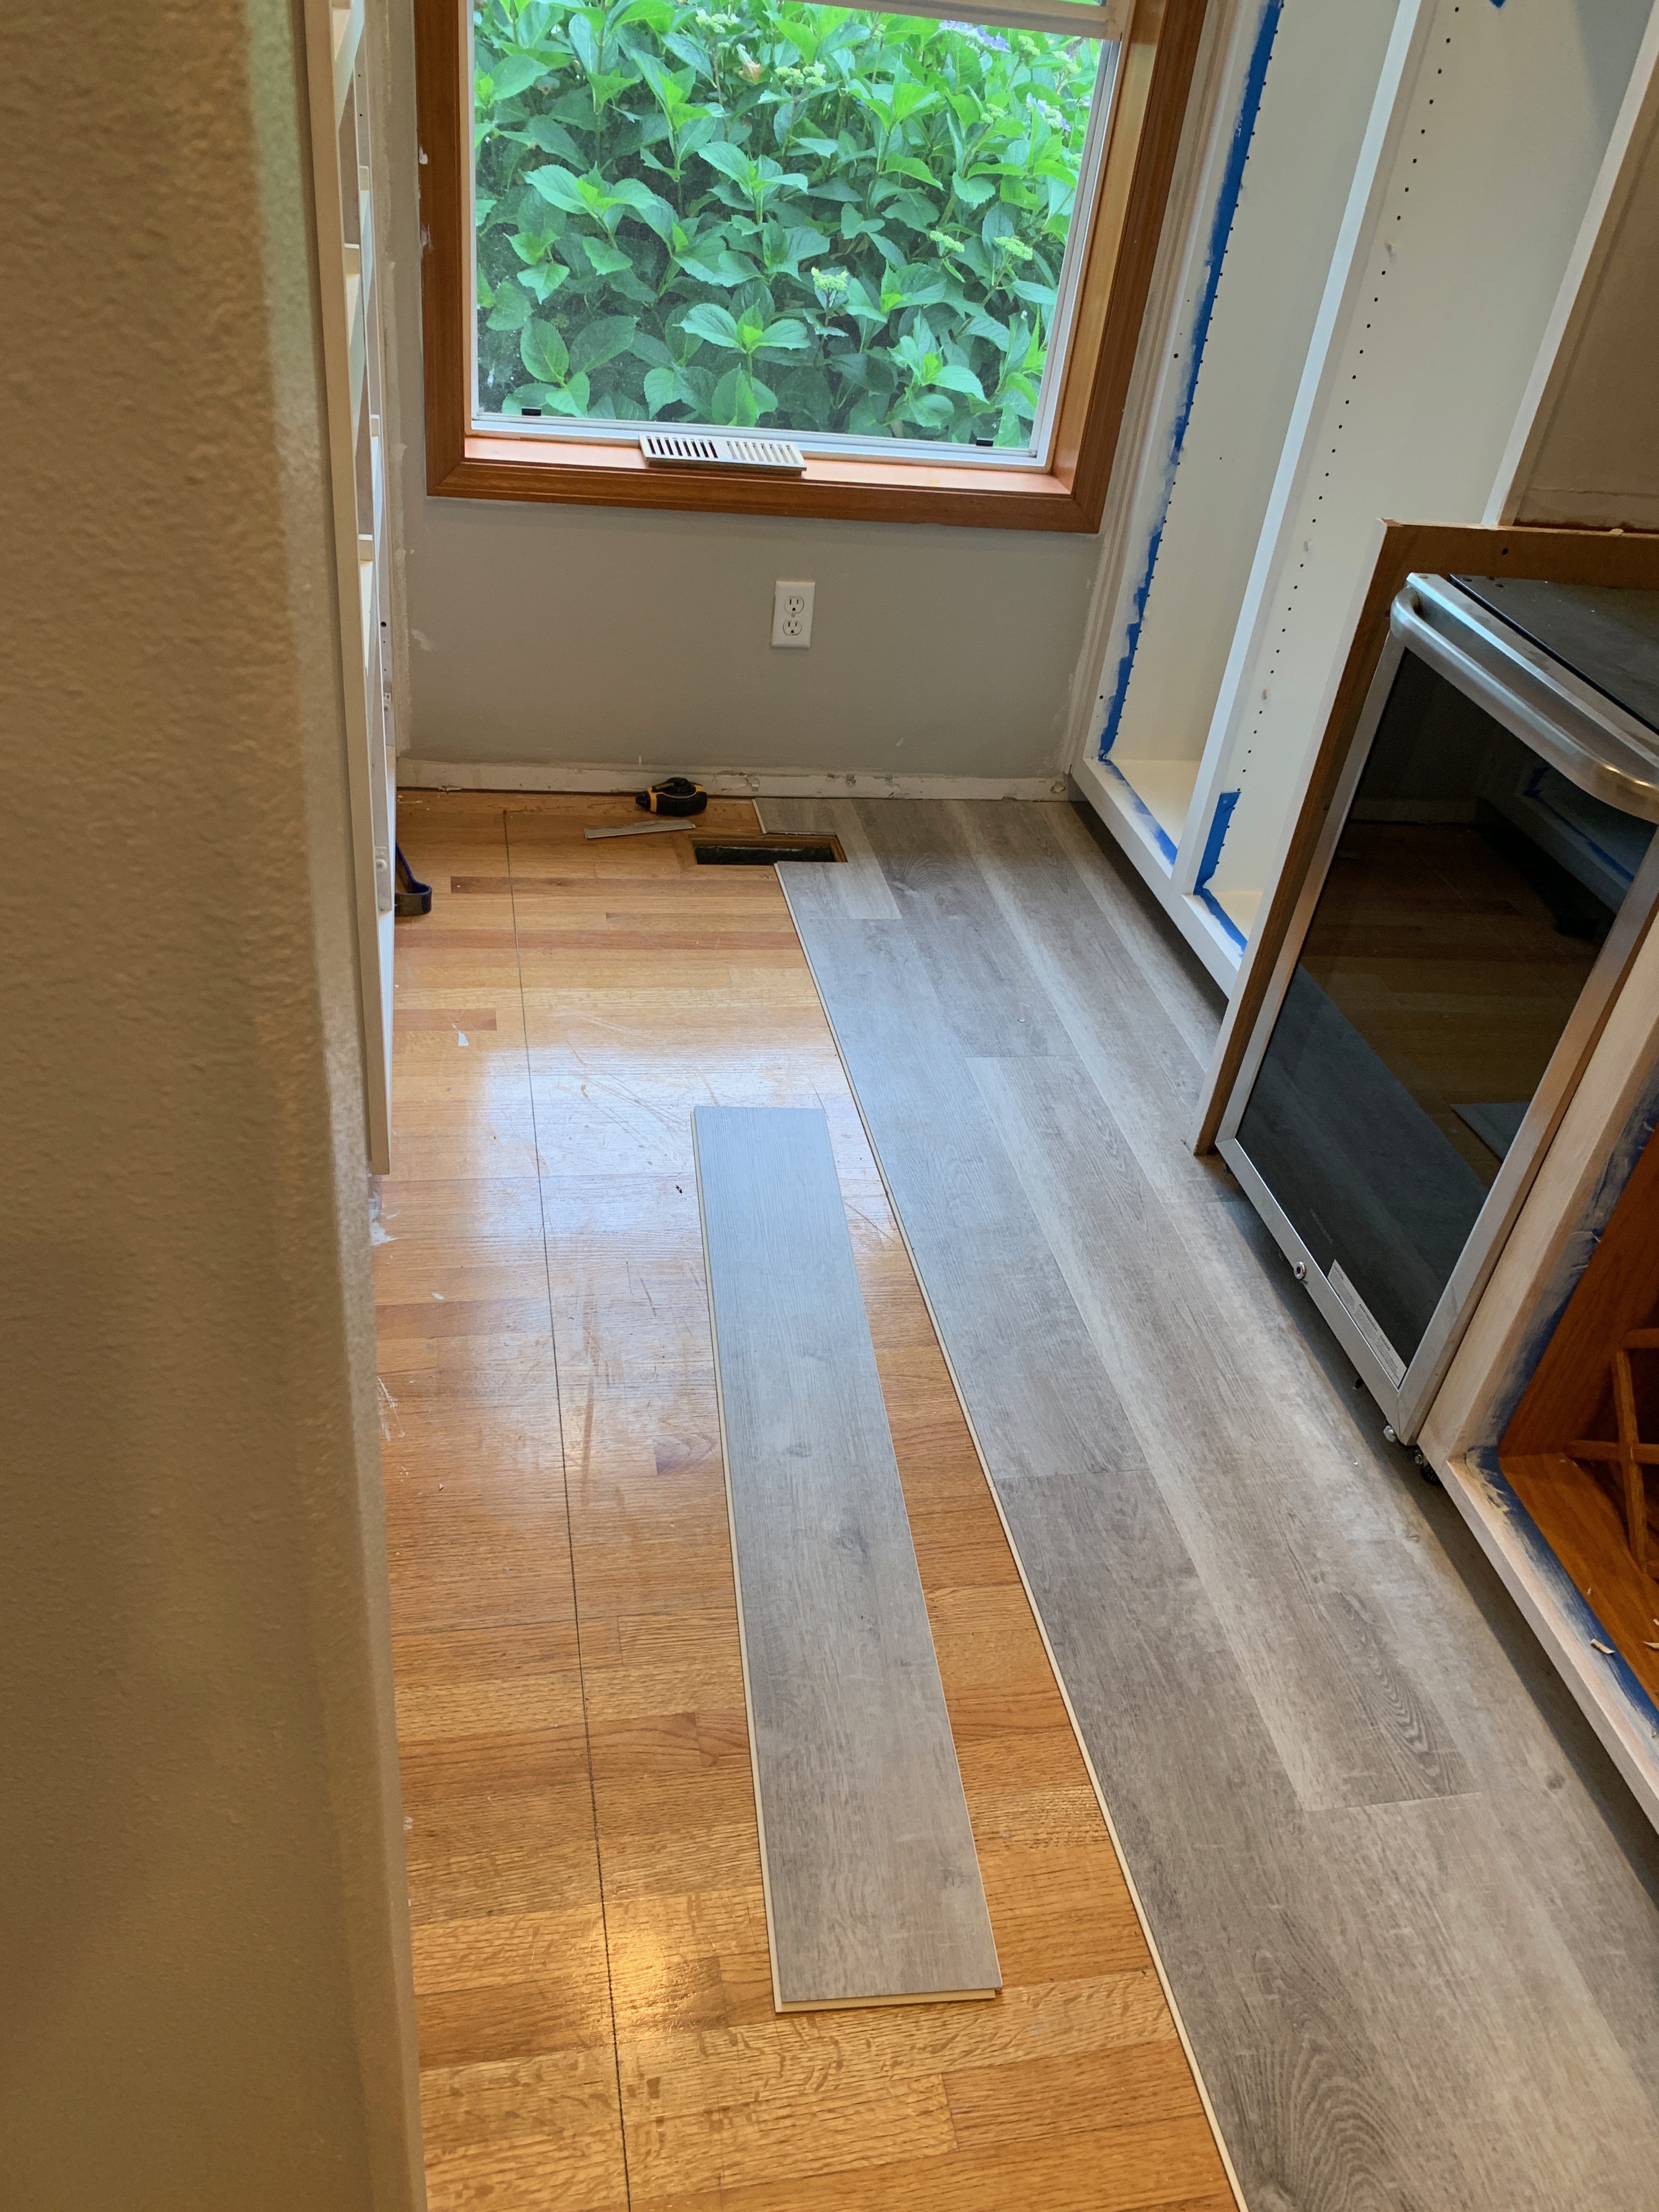 First of the floor